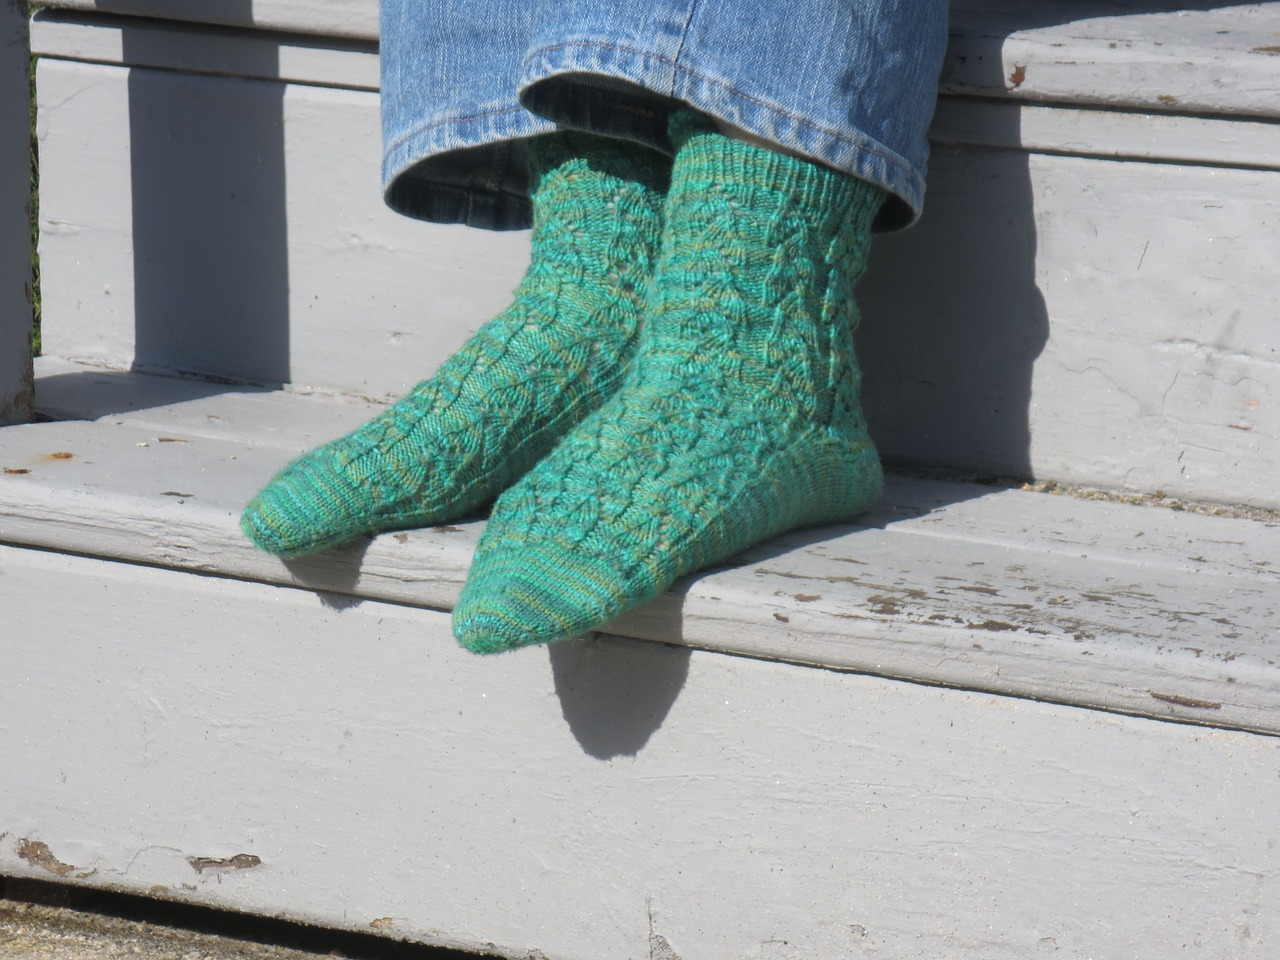 Socks trap the heat, warming you up for the winter days.